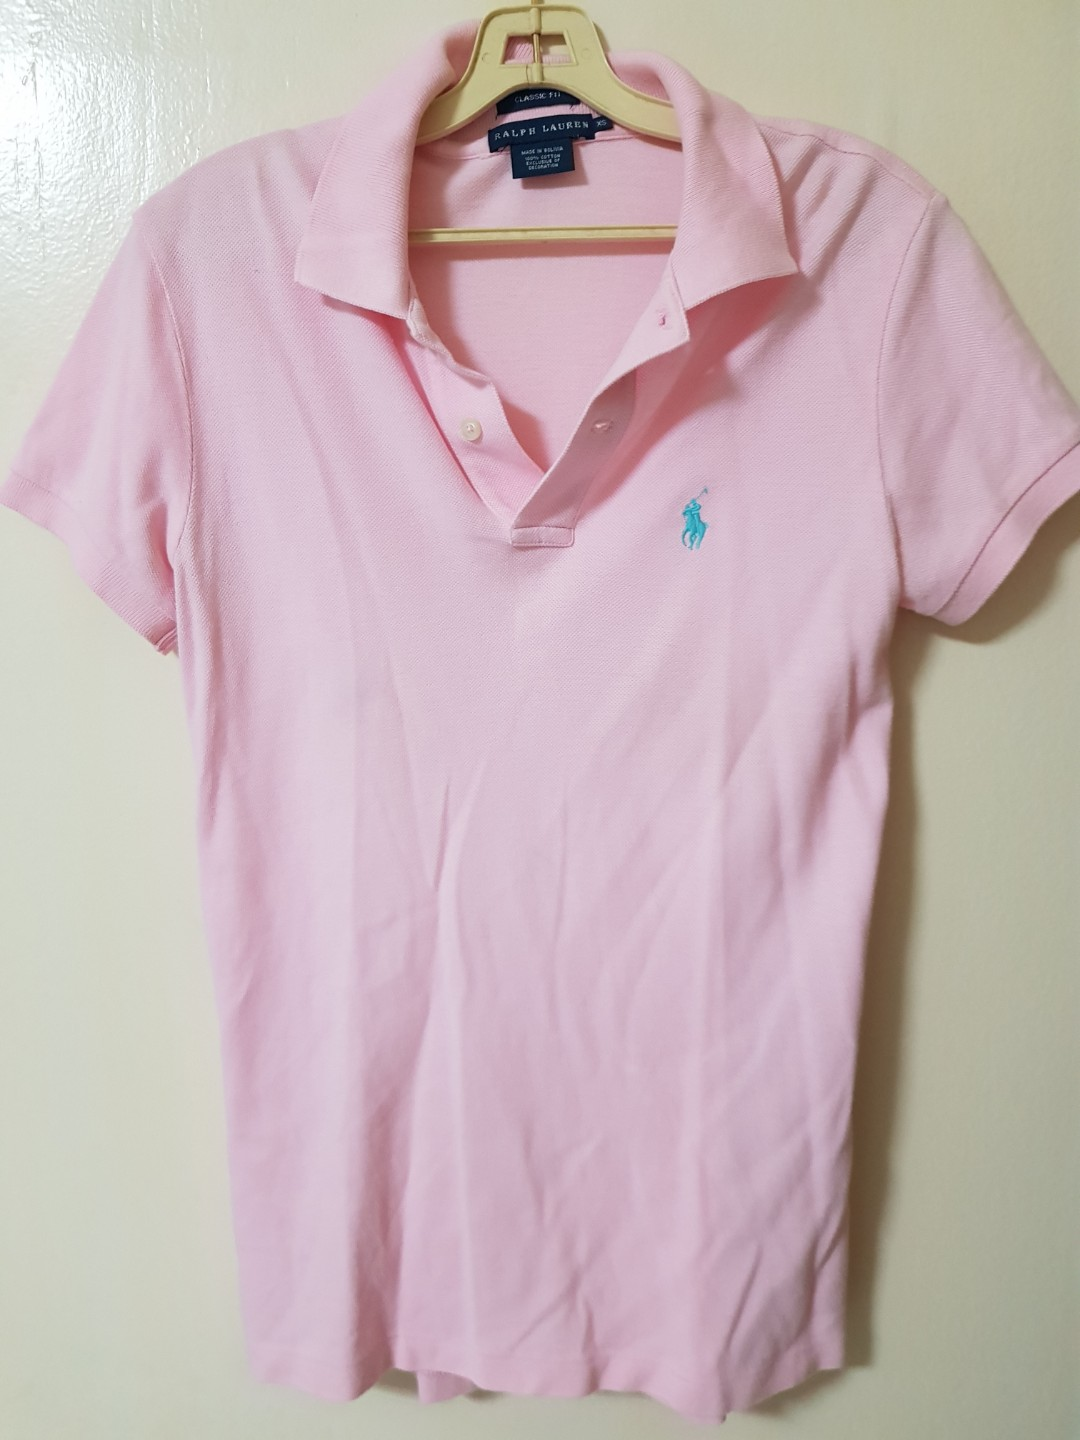 a97b71ad2 Preloved Ralph Lauren Polo shirt